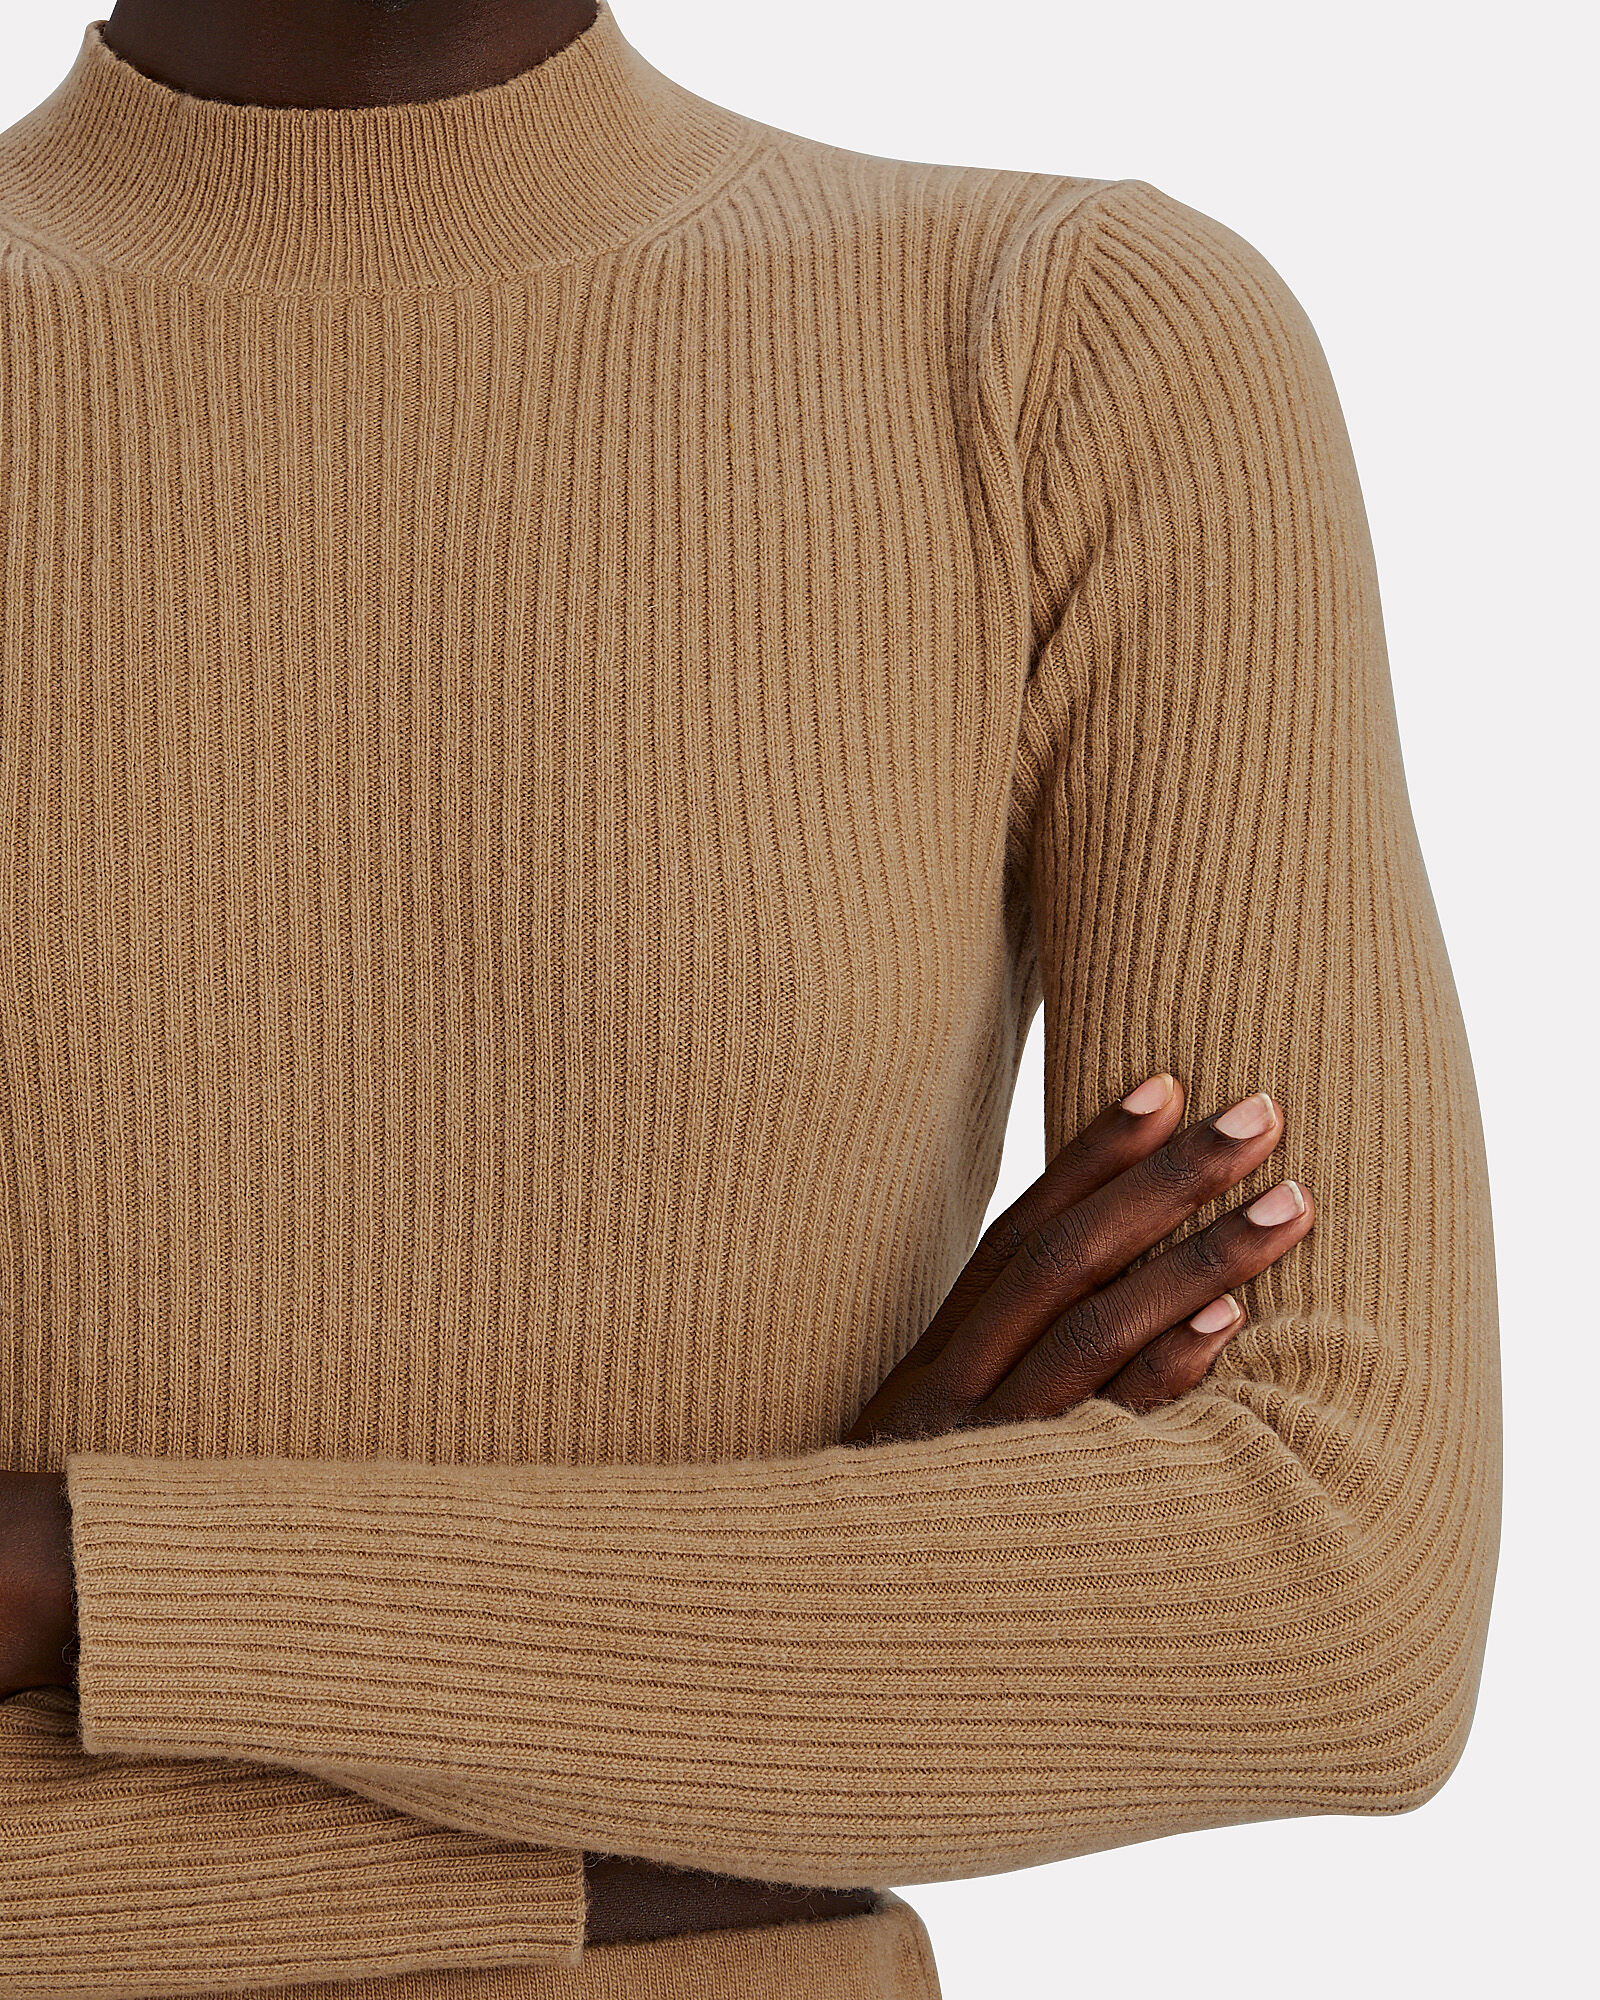 Enny Cropped Wool-Cashmere Sweater, BEIGE, hi-res